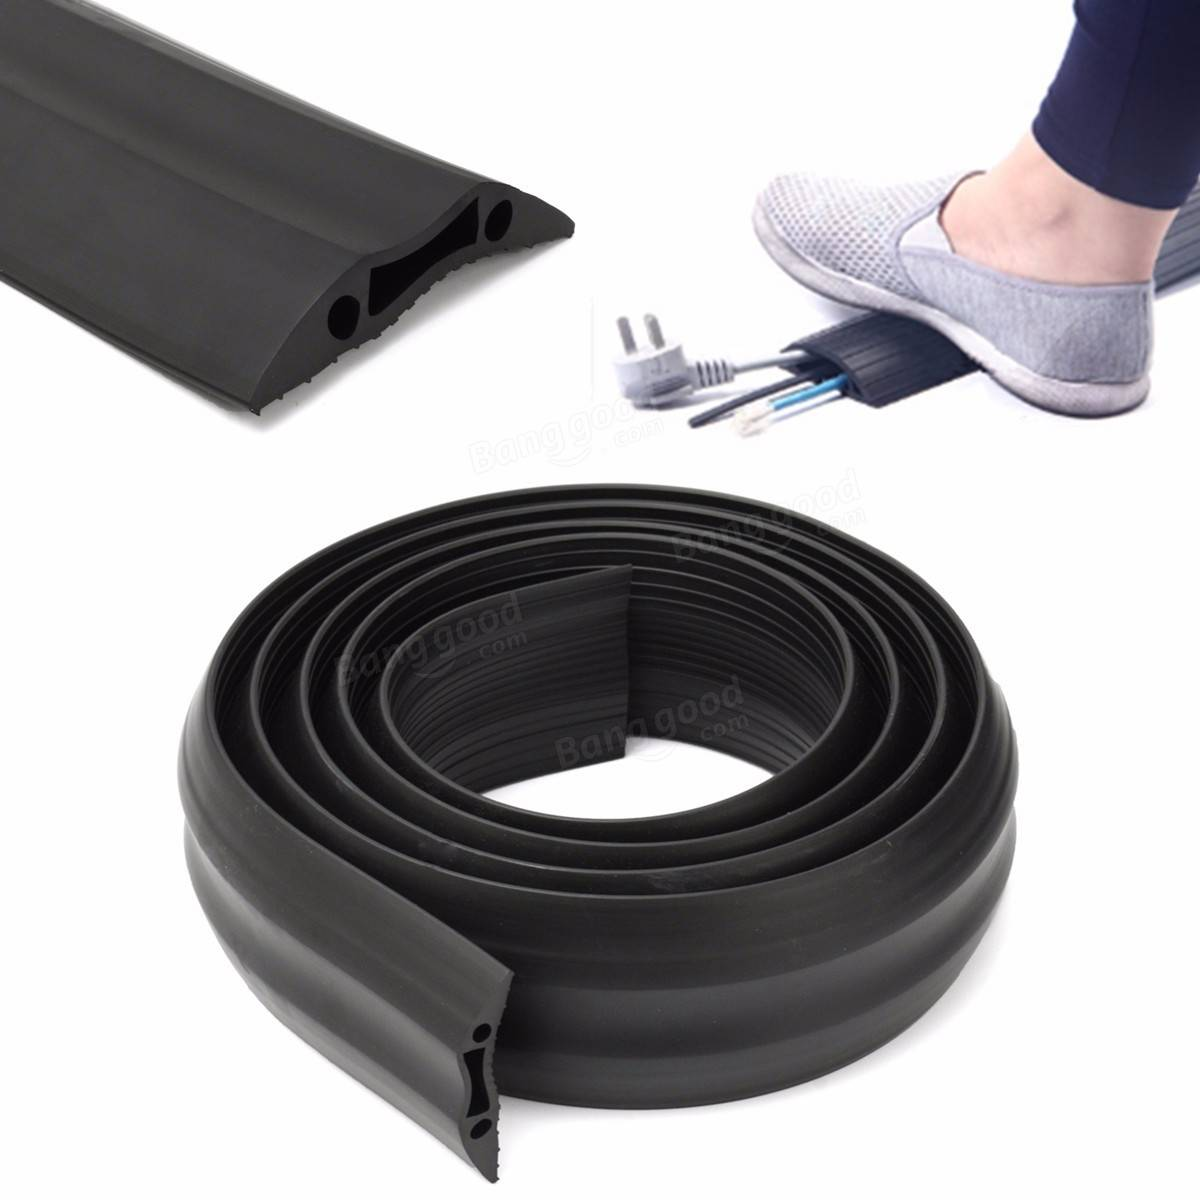 heavy duty rubber cable protector bumper tidy floor trunking cover sleeves 1m. Black Bedroom Furniture Sets. Home Design Ideas